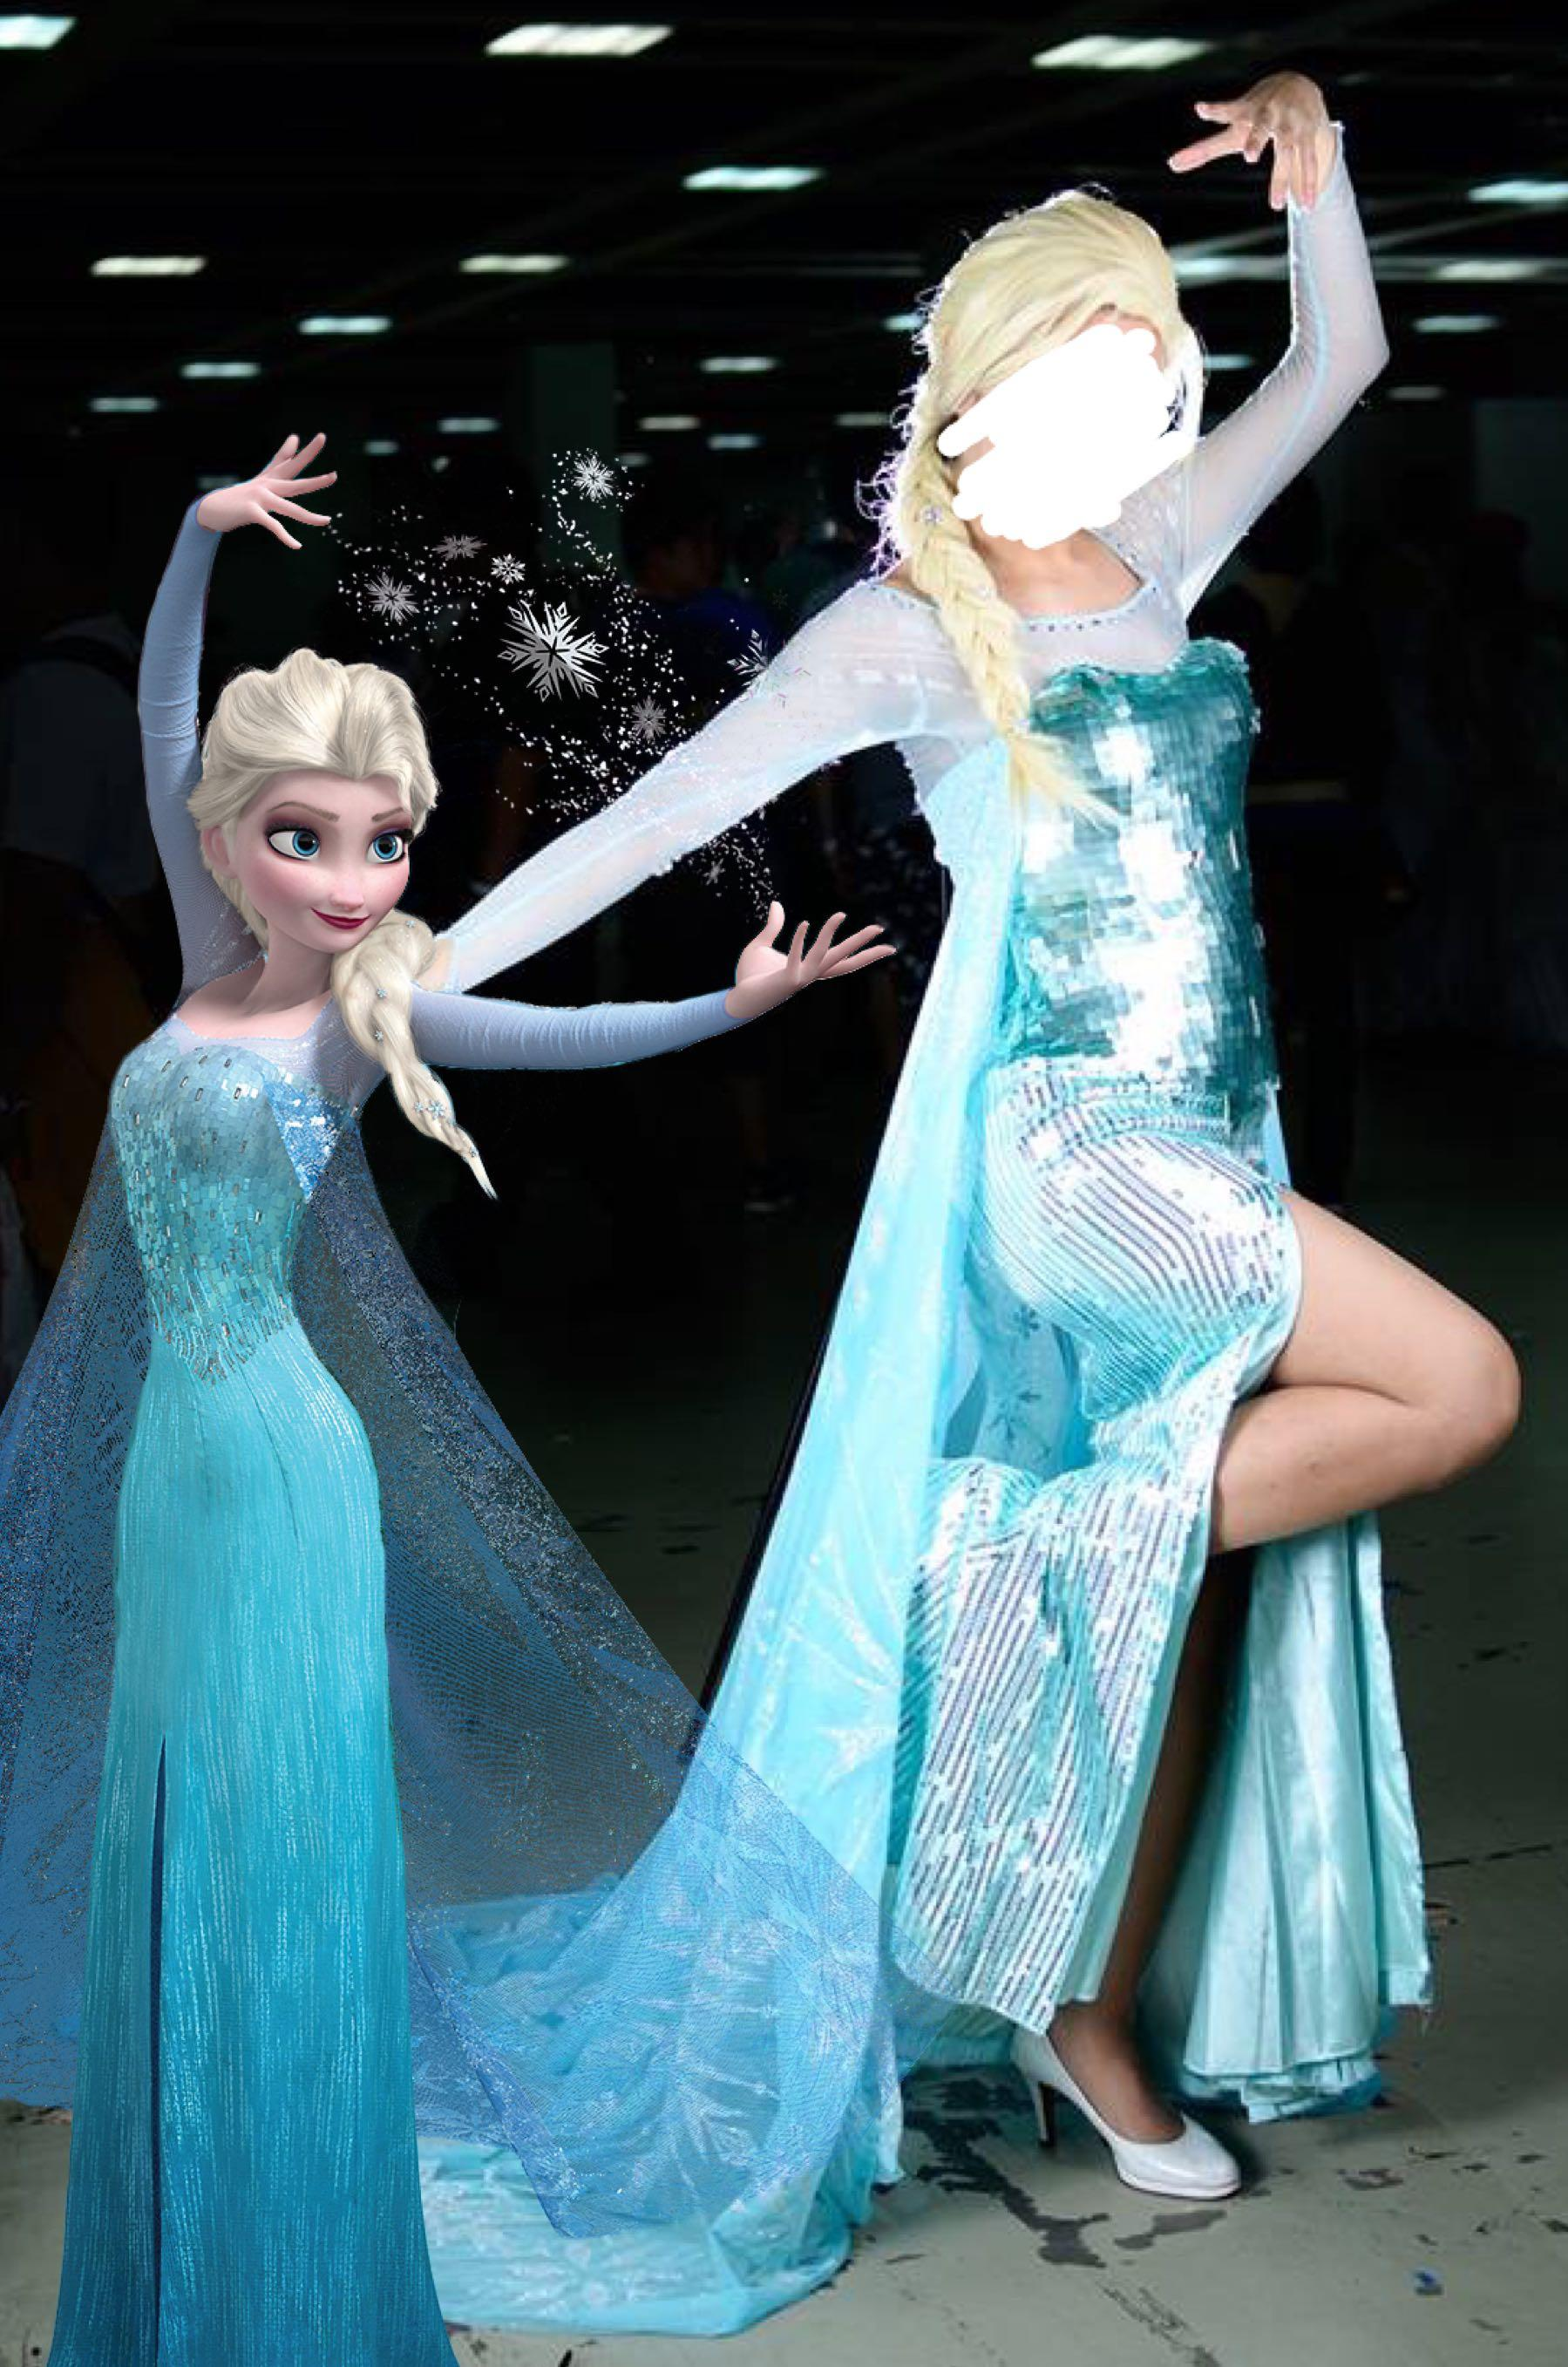 DISNEY Frozen Queen Elsa Cosplay Costume Rental Premium - Halloween / Party / Event / Annual Dinner / Birthday (Movie Character)